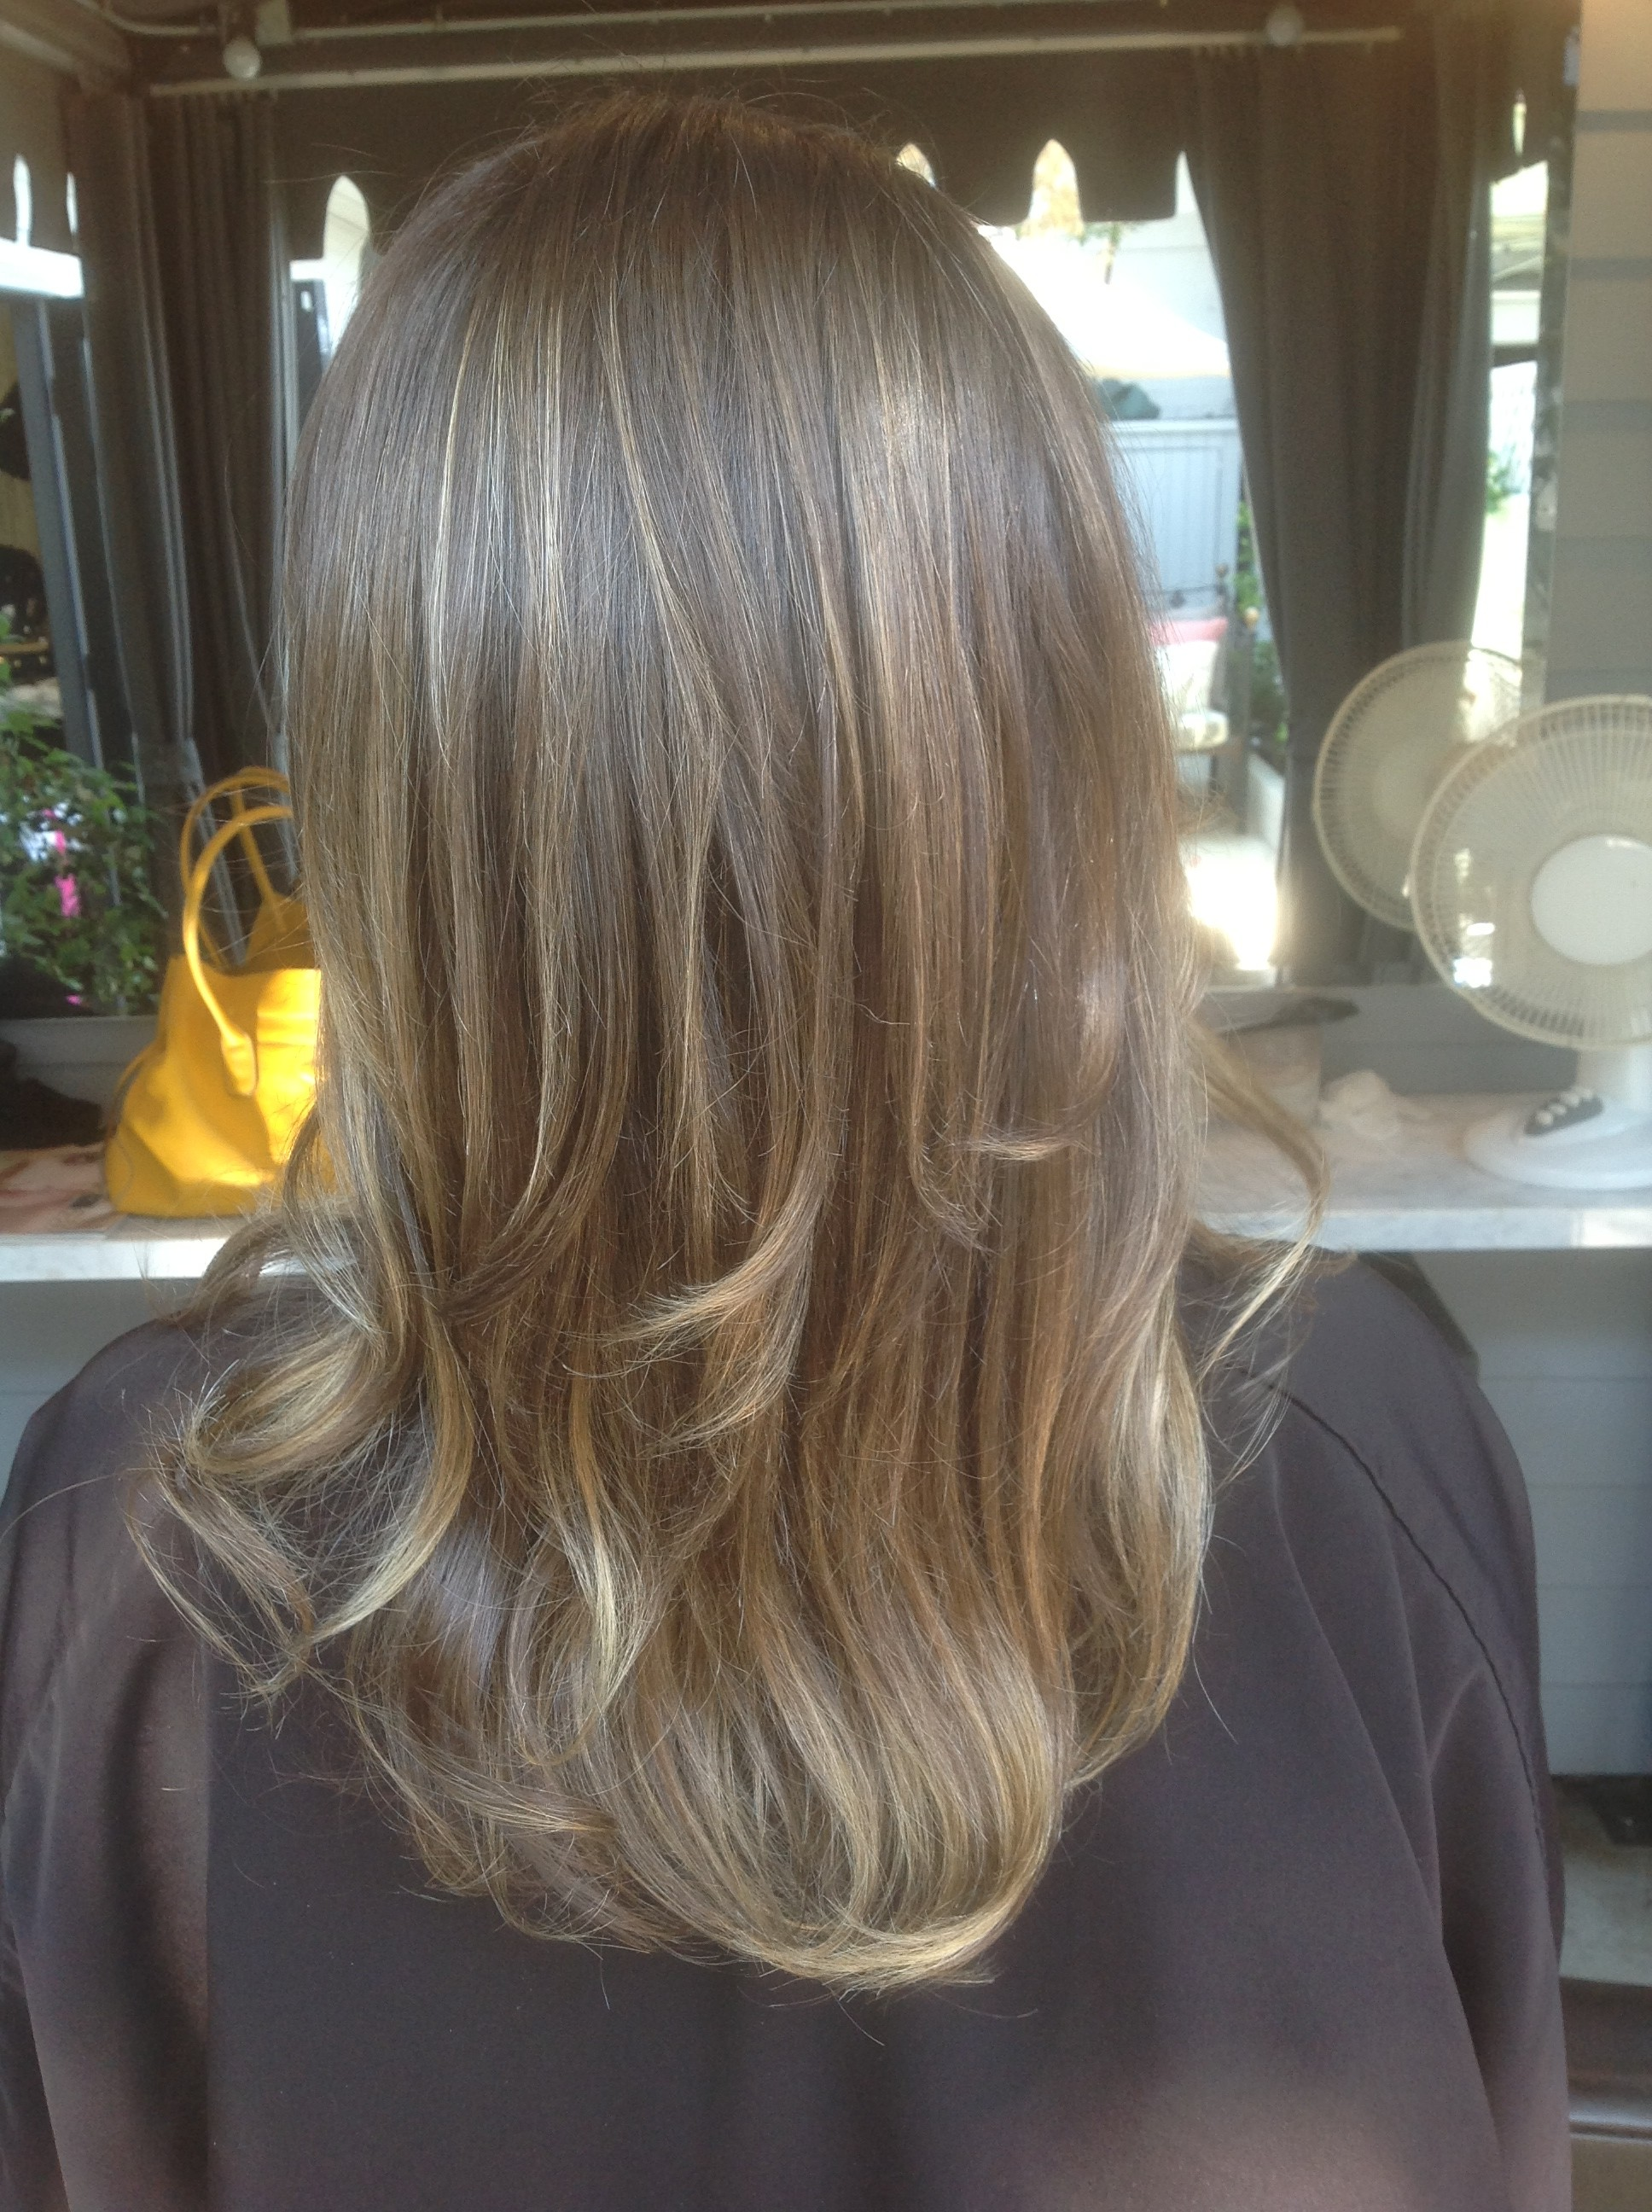 Fall Hair Colors For Brunettes 2013 Images Free Download